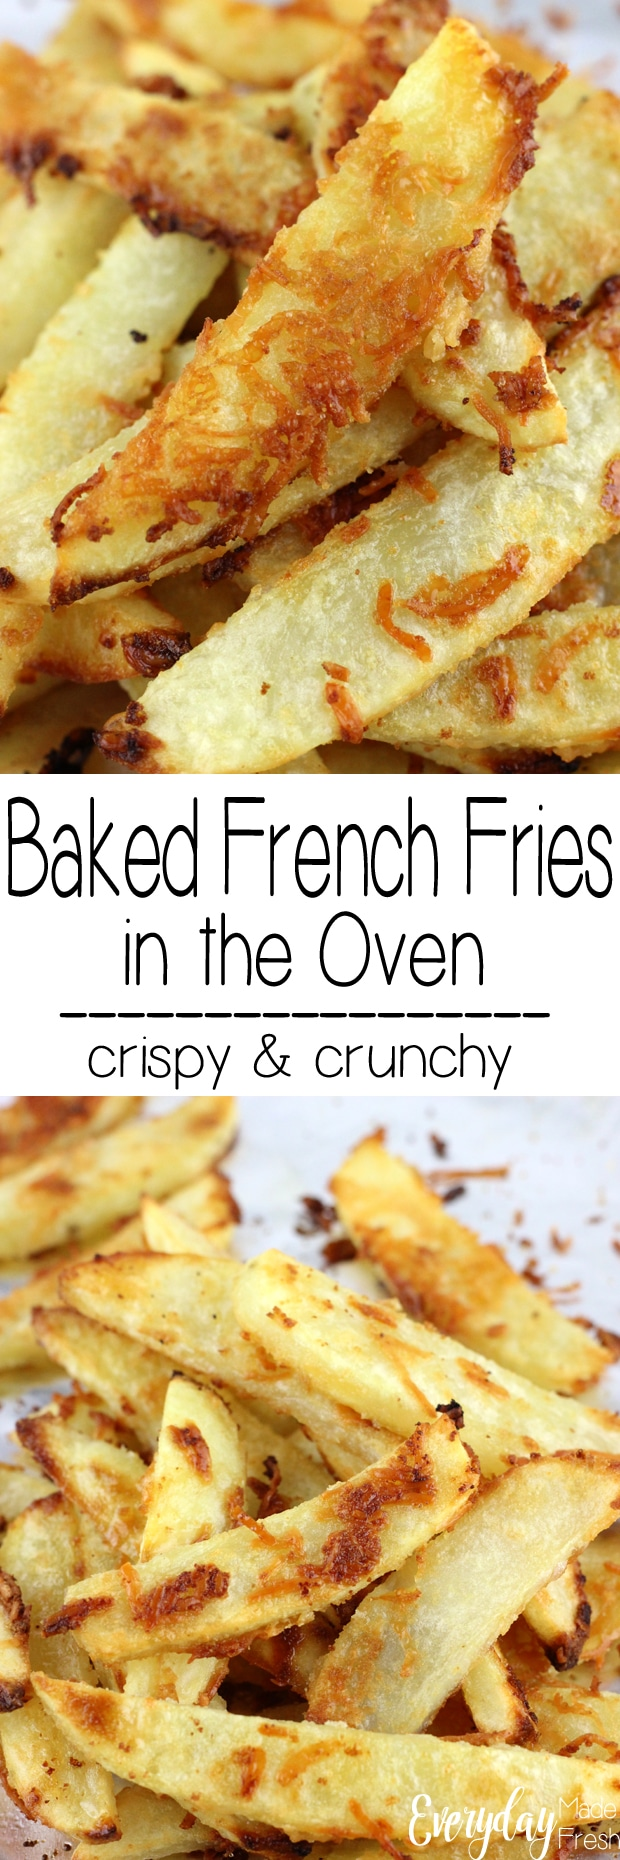 These Baked French Fries in the Oven are simple to make, ready in less than 30 minutes, and always crispy and crunchy. | EverydayMadeFresh.com